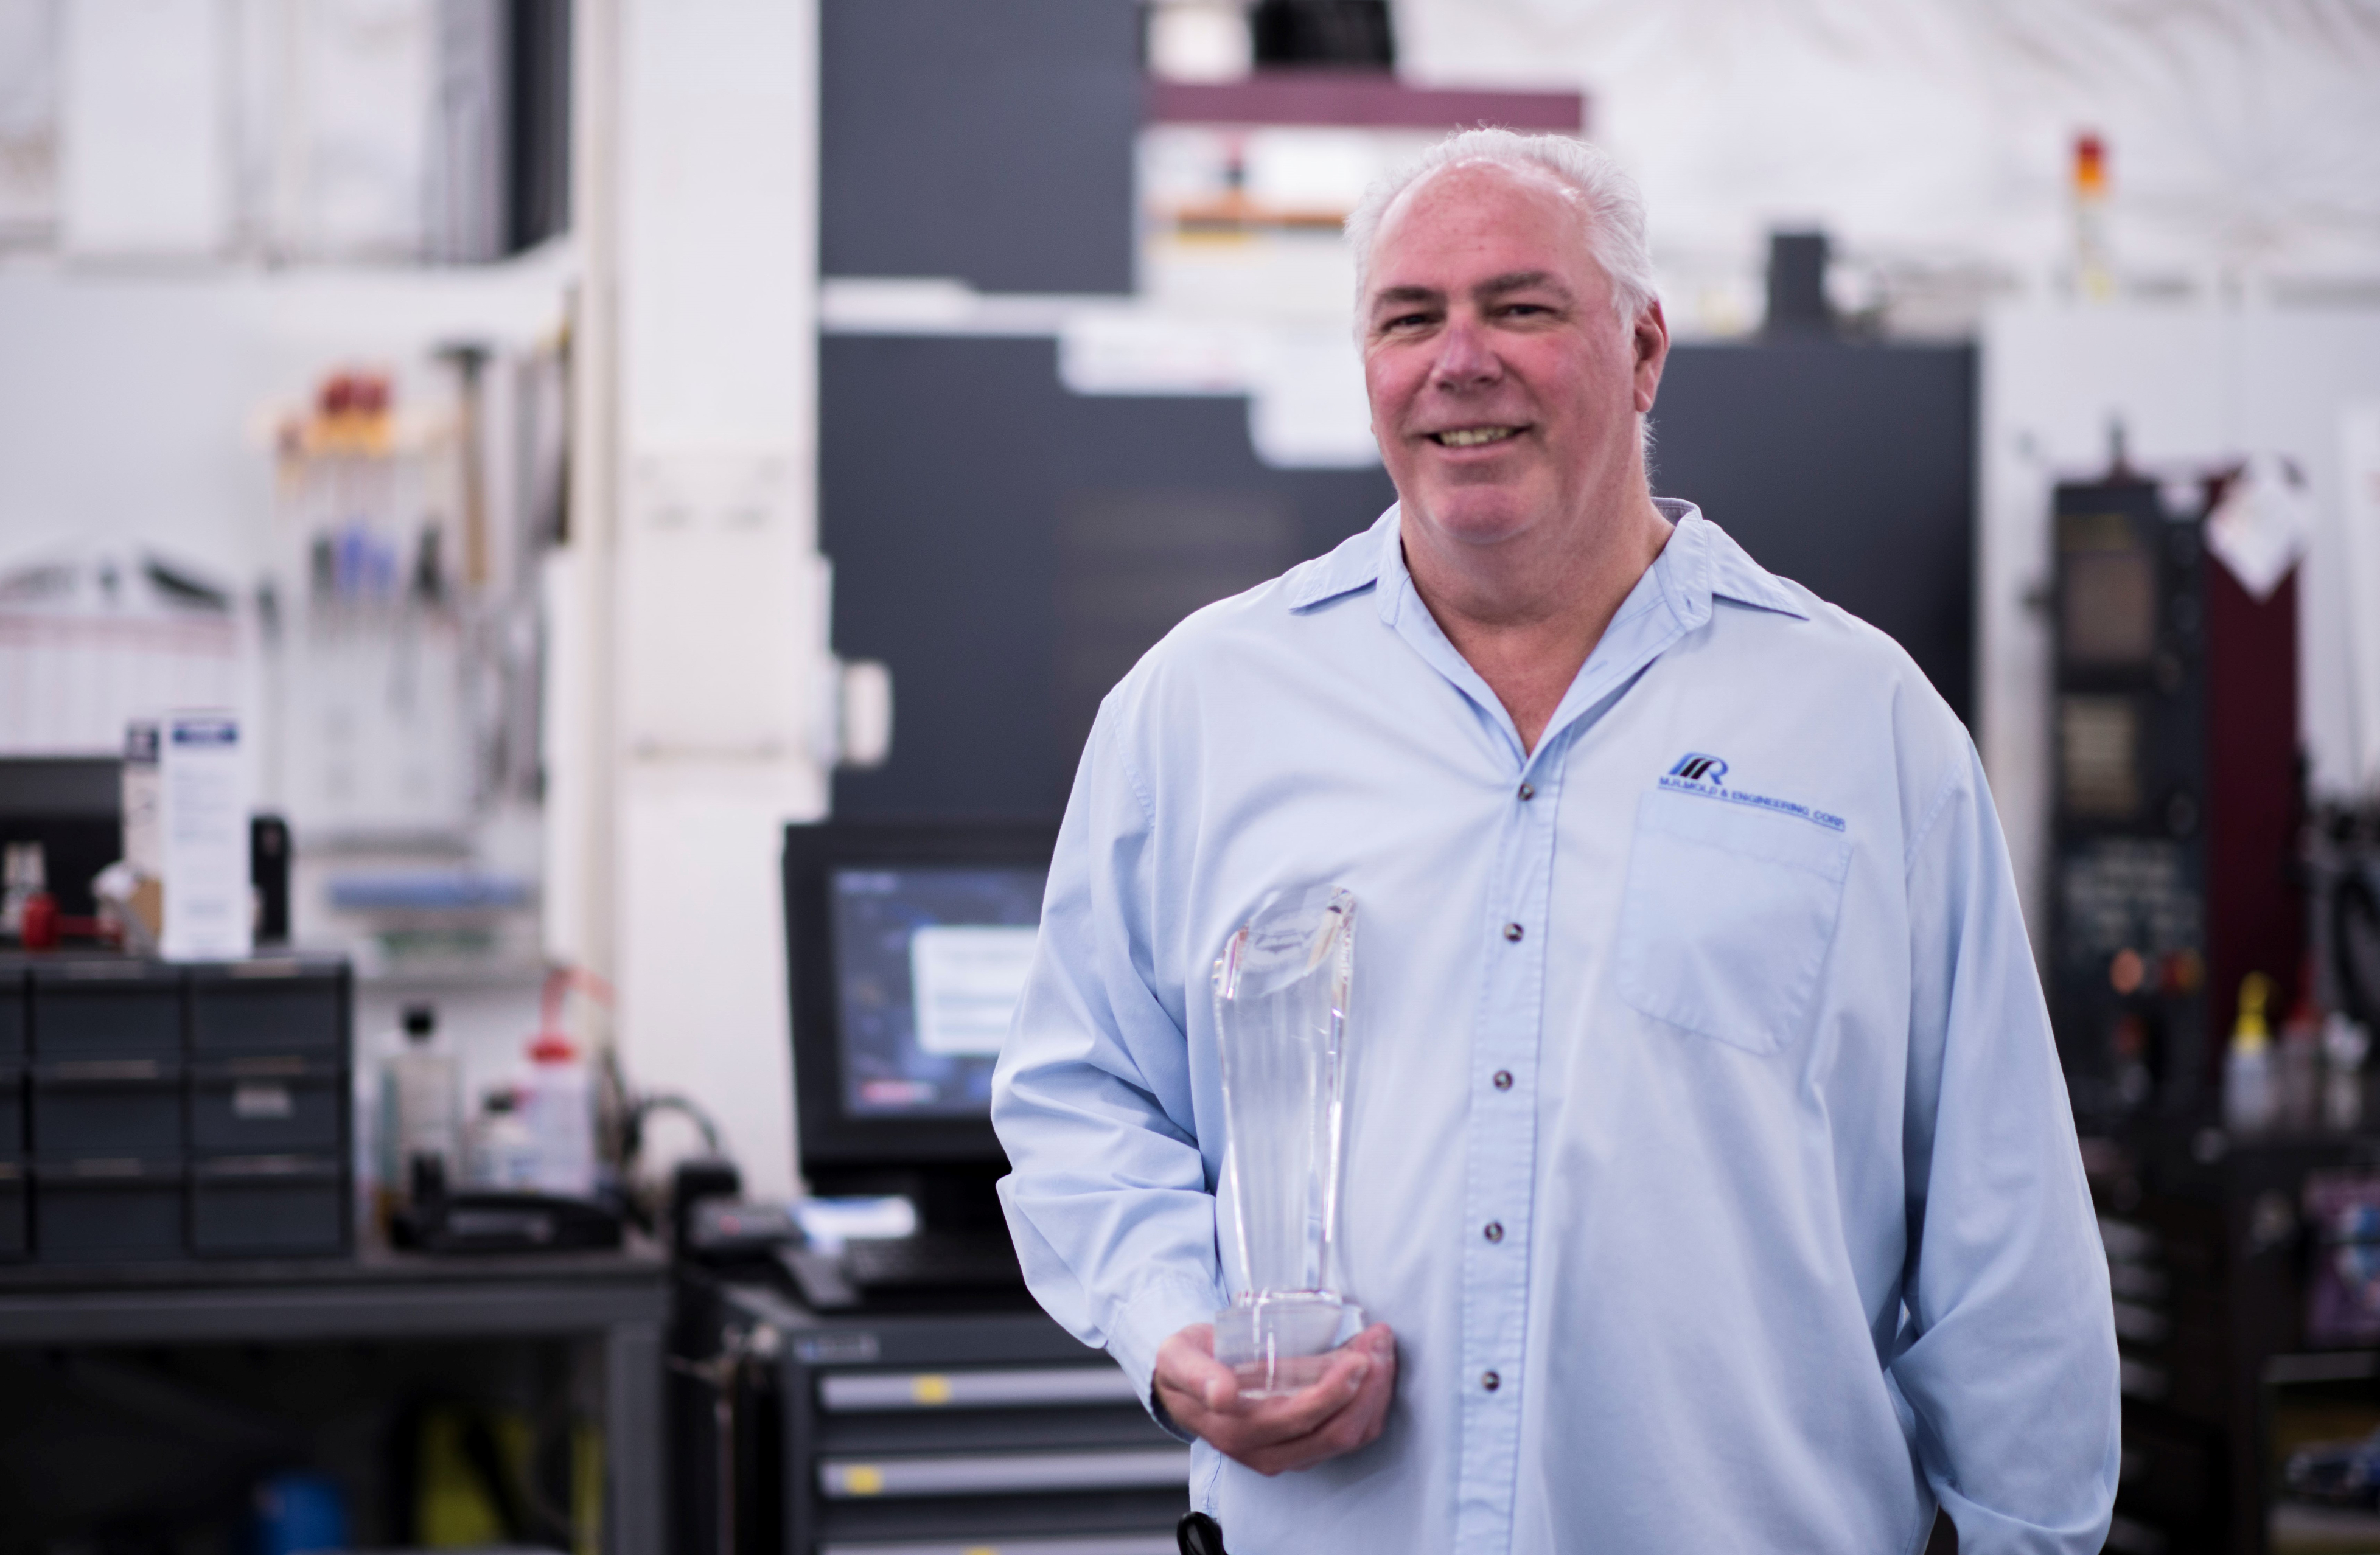 A Man Humbled by the AMBA's Mold Builder of the Year Award